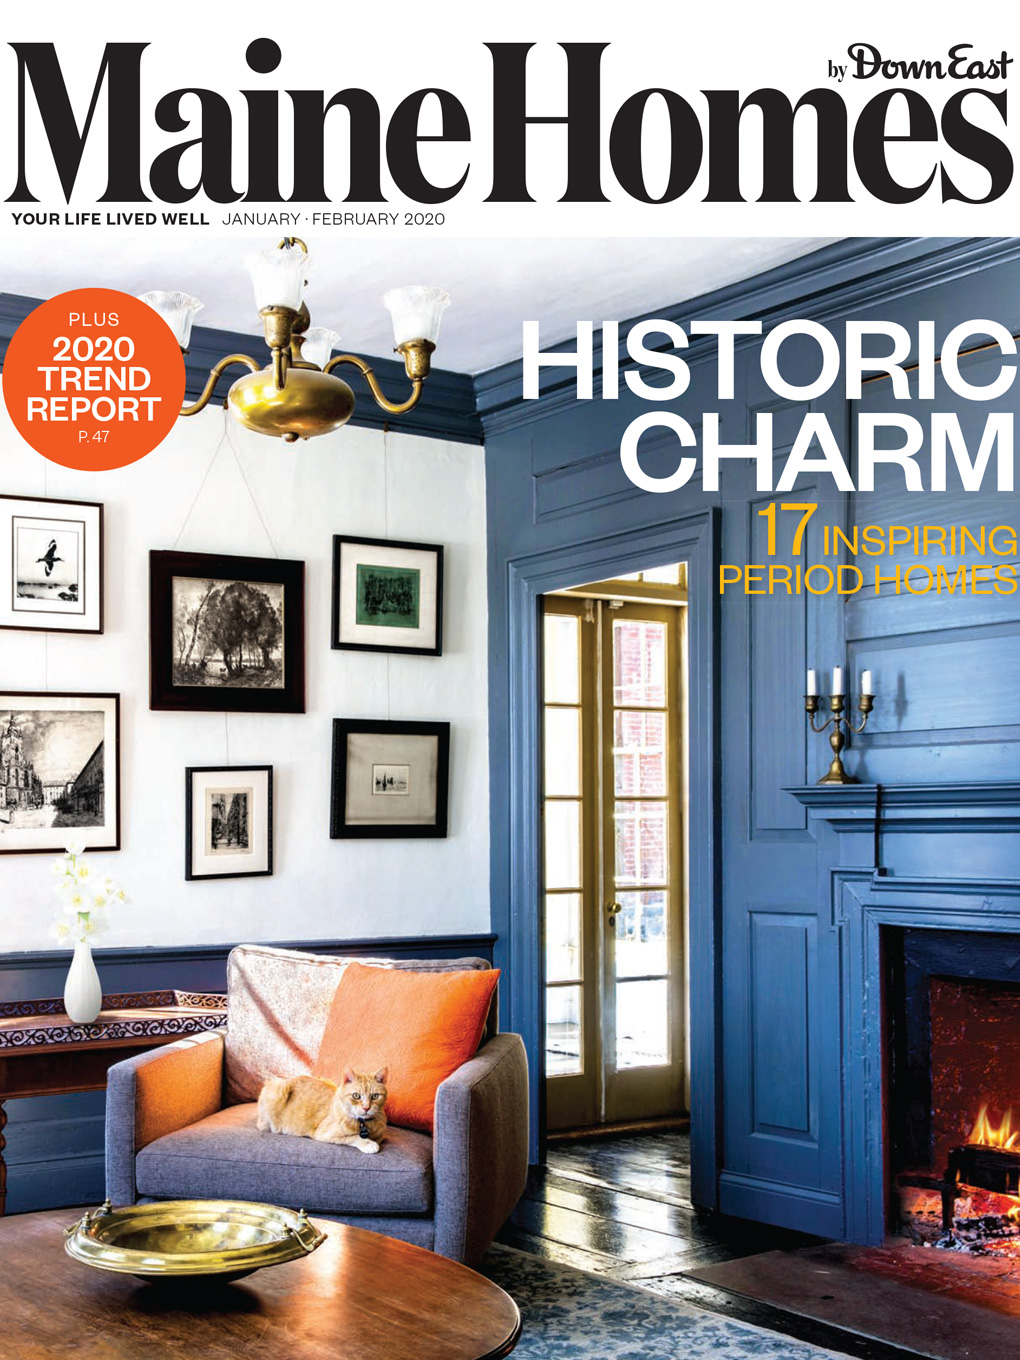 Maine Homes by Down East magazine, January/February 2020